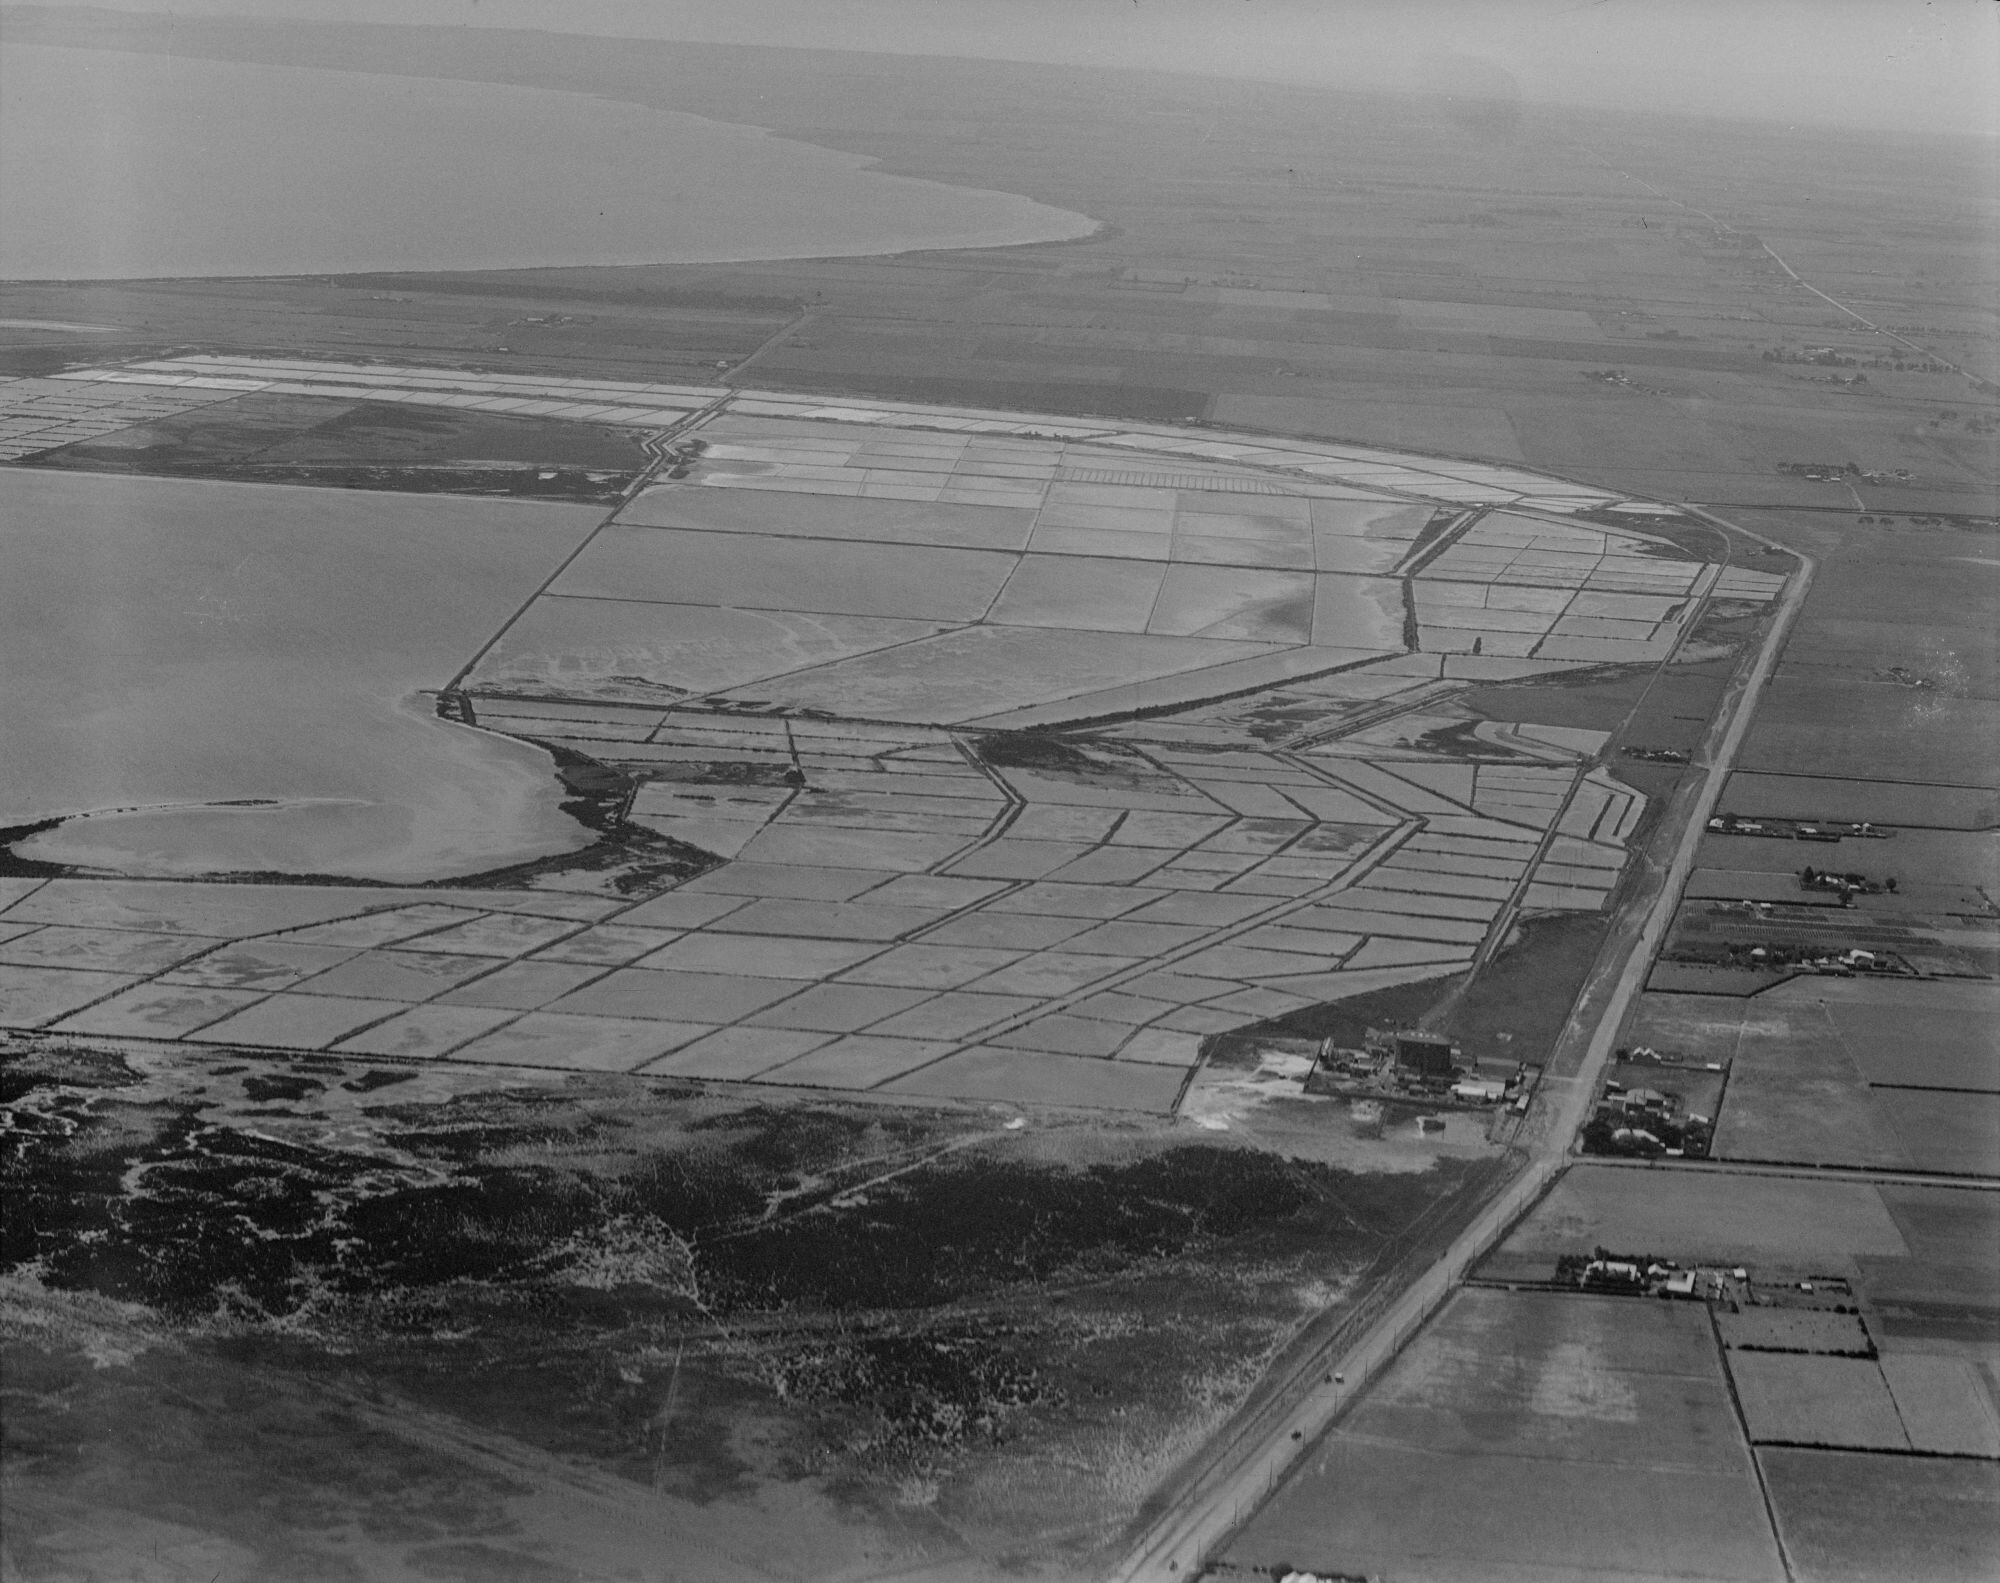 Photographed by Charles Daniel Pratt (27 September 1927)  'Cheetham Salt Works, Geelong, looking east over salt pans'  Photograph provided by  State Library of Victoria